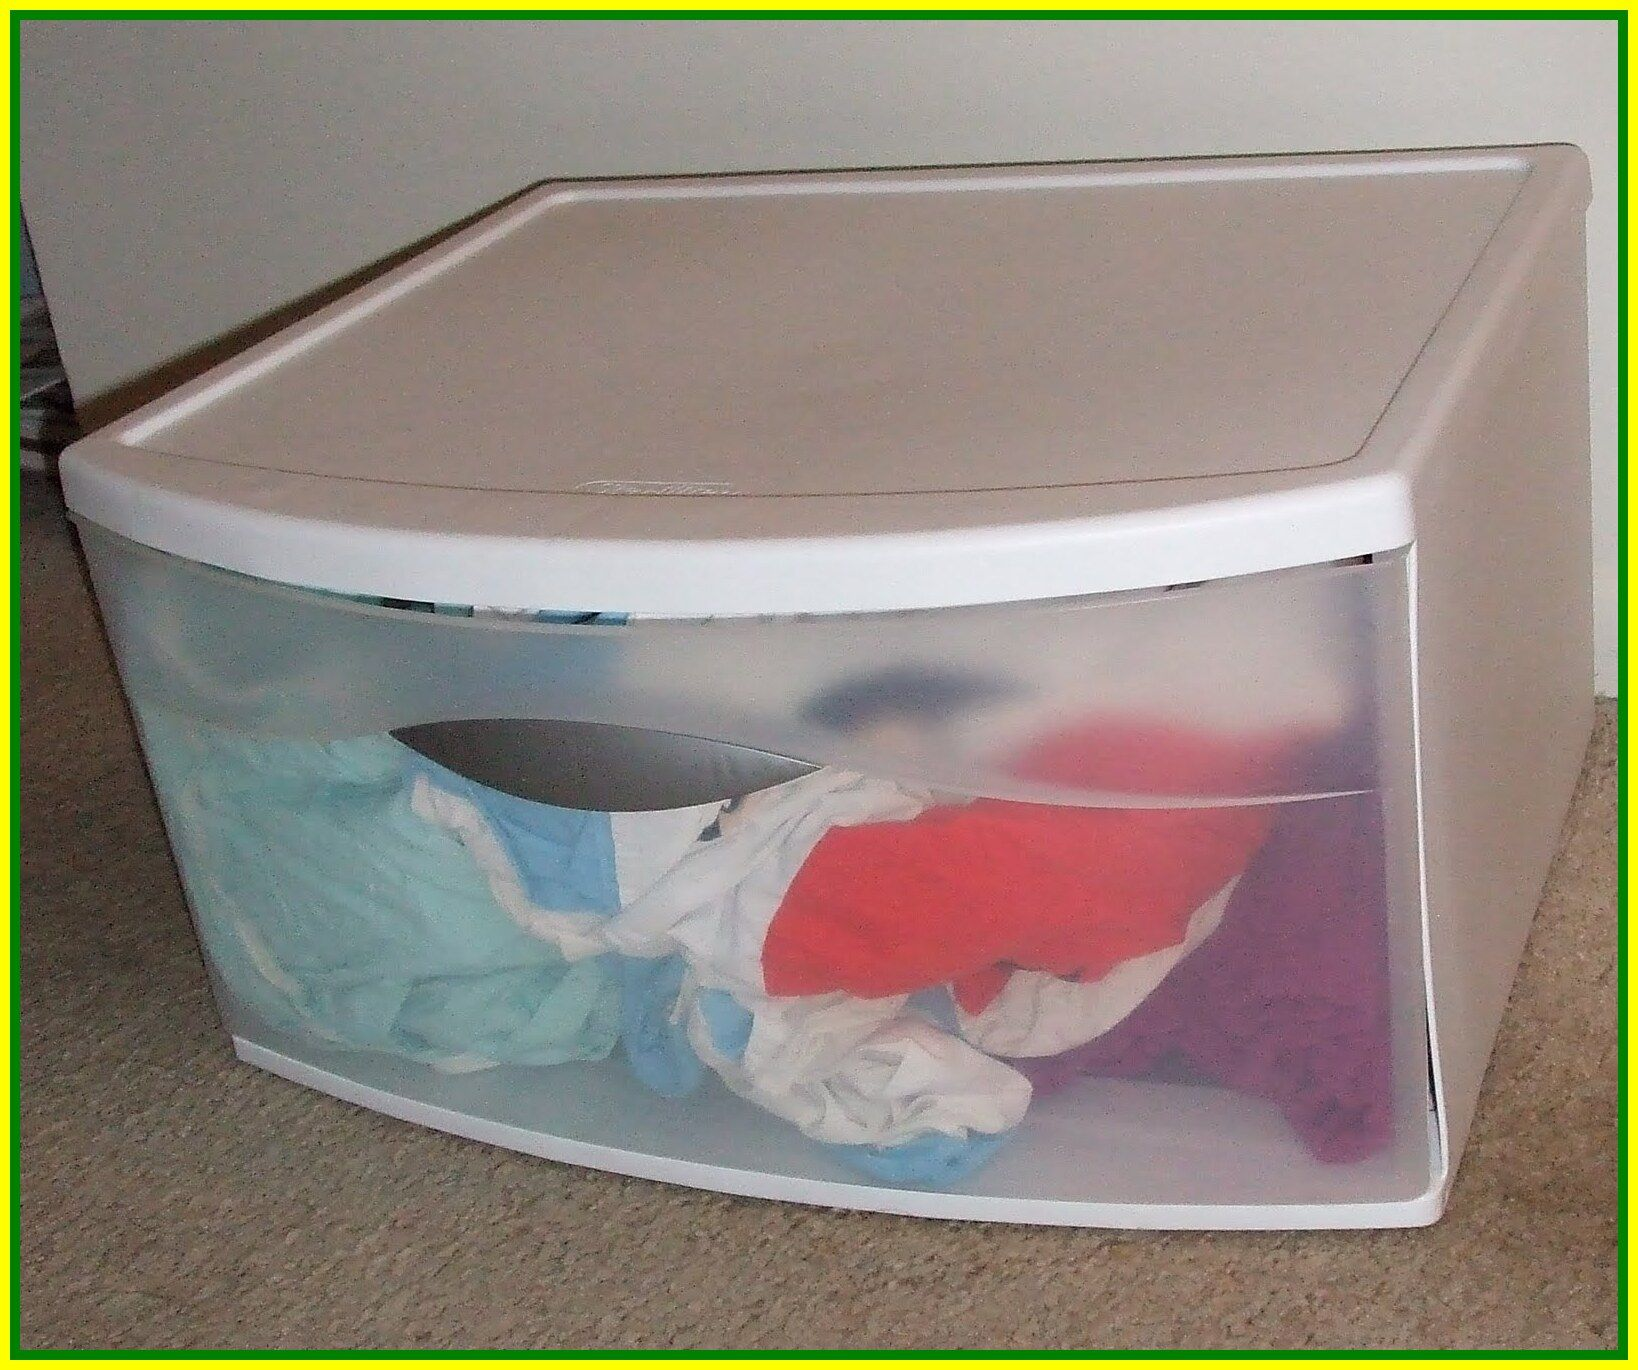 75 Reference Of Plastic Drawer Storage Single In 2020 Plastic Drawers Storage Drawers Drawers